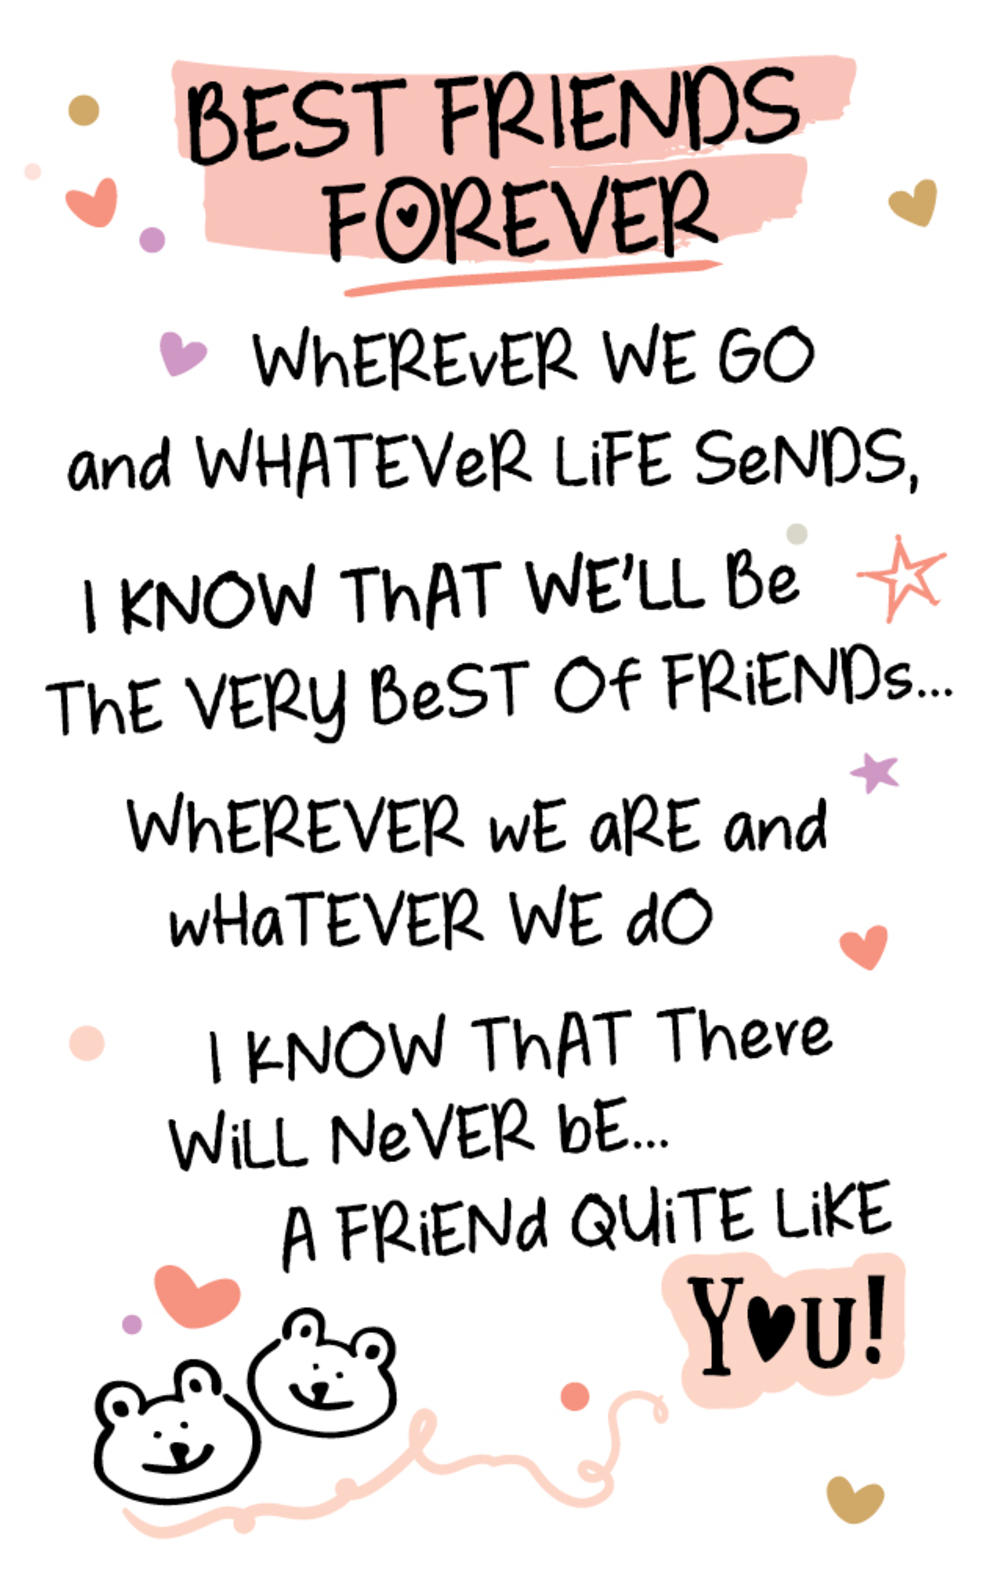 Best Friends Forever Inspired Words Keepsake Credit Card Envelope